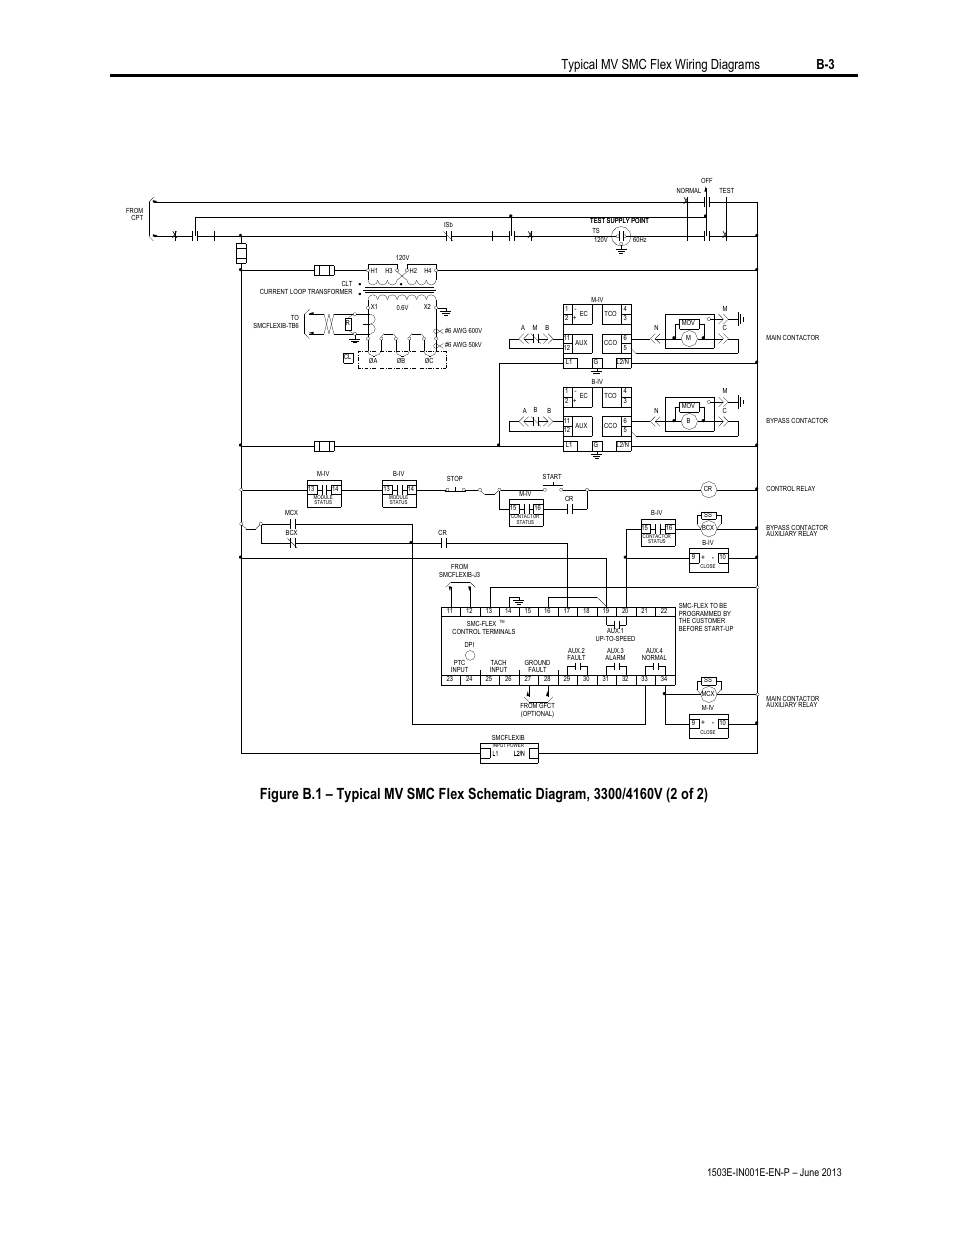 rockwell automation mv smc flex oem components page57?resize\\\\\\\\\\\\\\\\\\\\\\\\\\\\\\\\\\\\\\\\\\\\\\\=665%2C861 new yorker boiler wiring diagram gandul 45 77 79 119 1970 Mustang Dash Wiring Diagram at bakdesigns.co